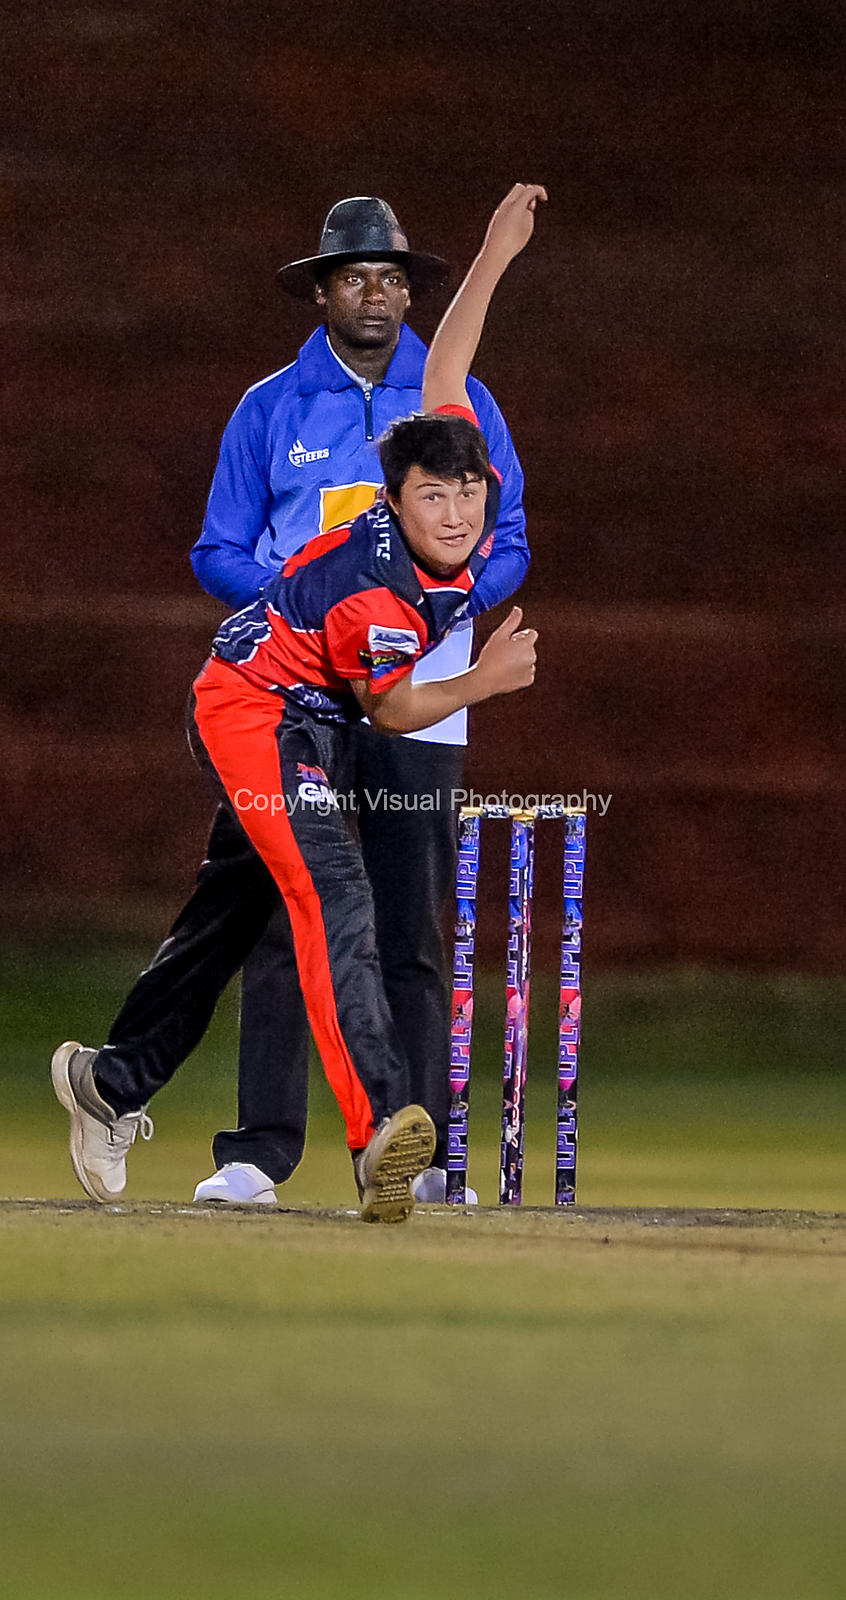 Cricket-under16- LPL Championship 2019-cricket final Tasmanian devils Vs Western Warriors - wits university main cricket oval.